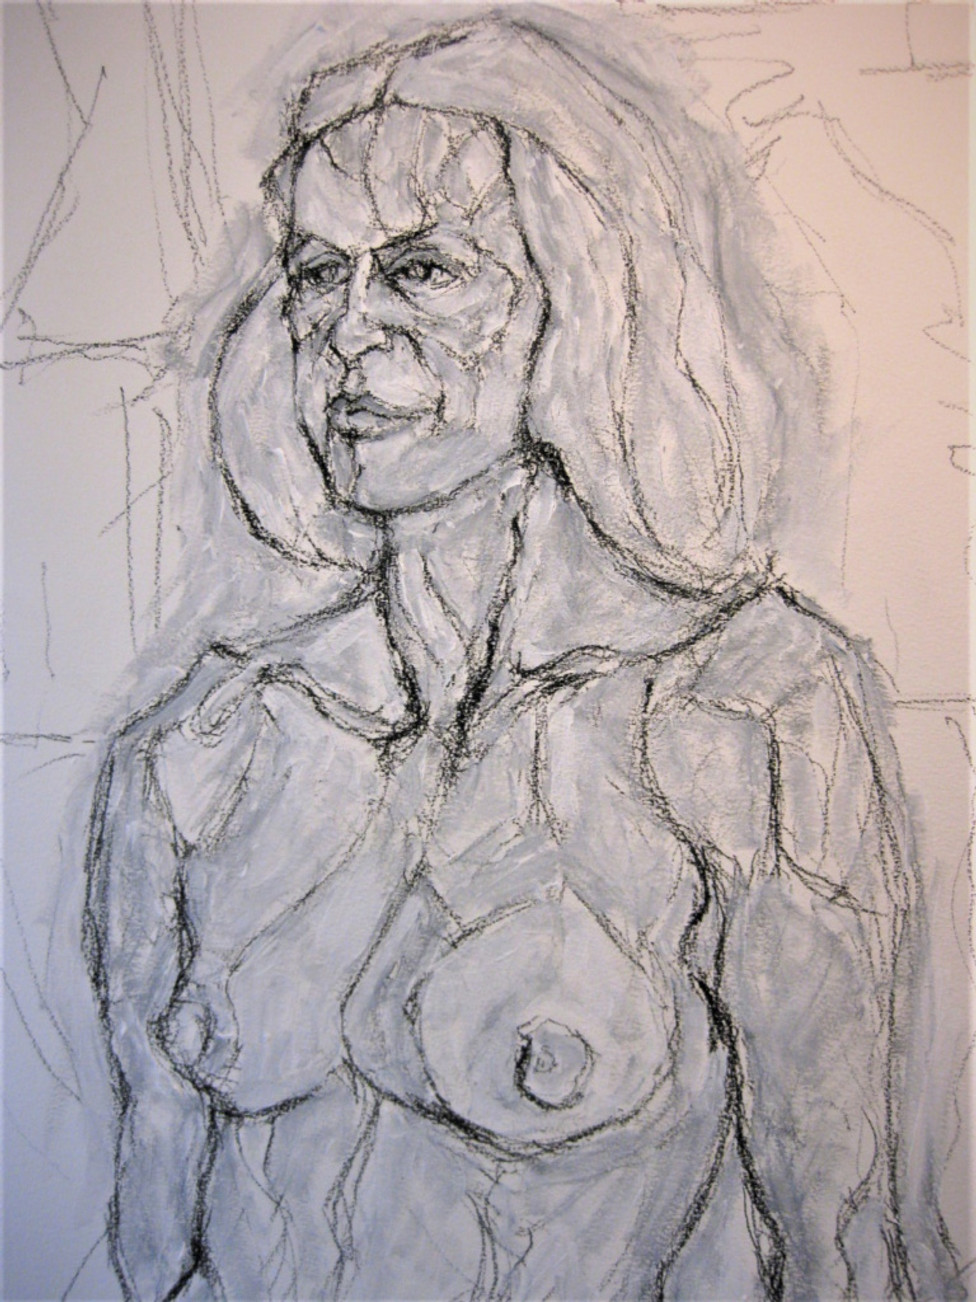 painted drawing of torso